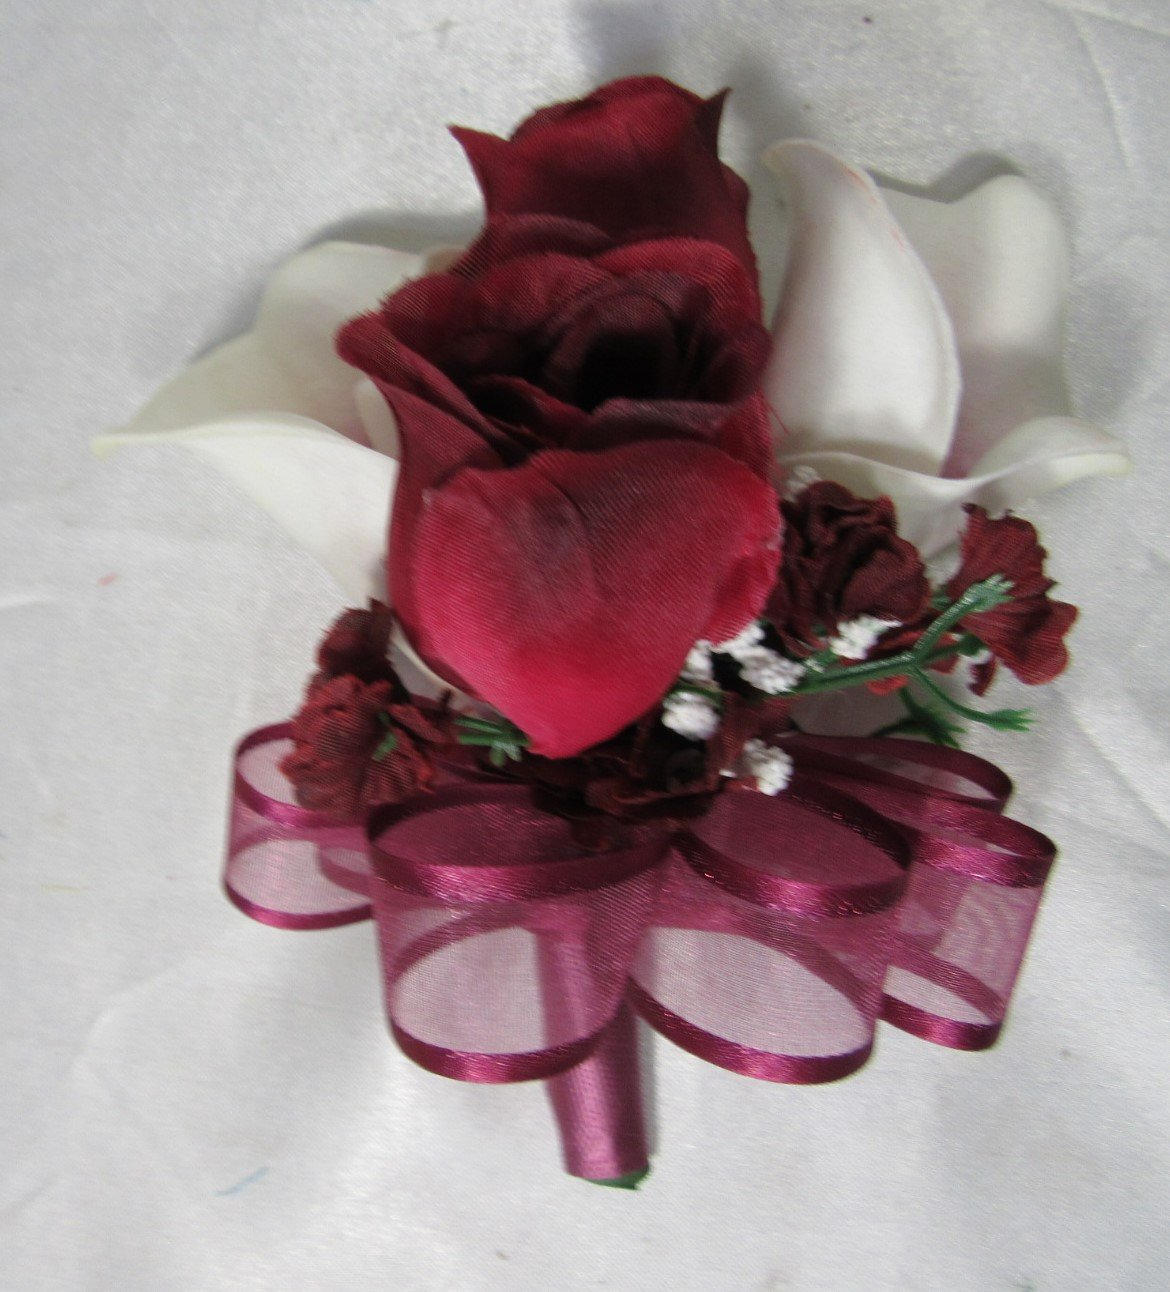 Burgundy Rose Calla Lily Corsage or Boutonniere